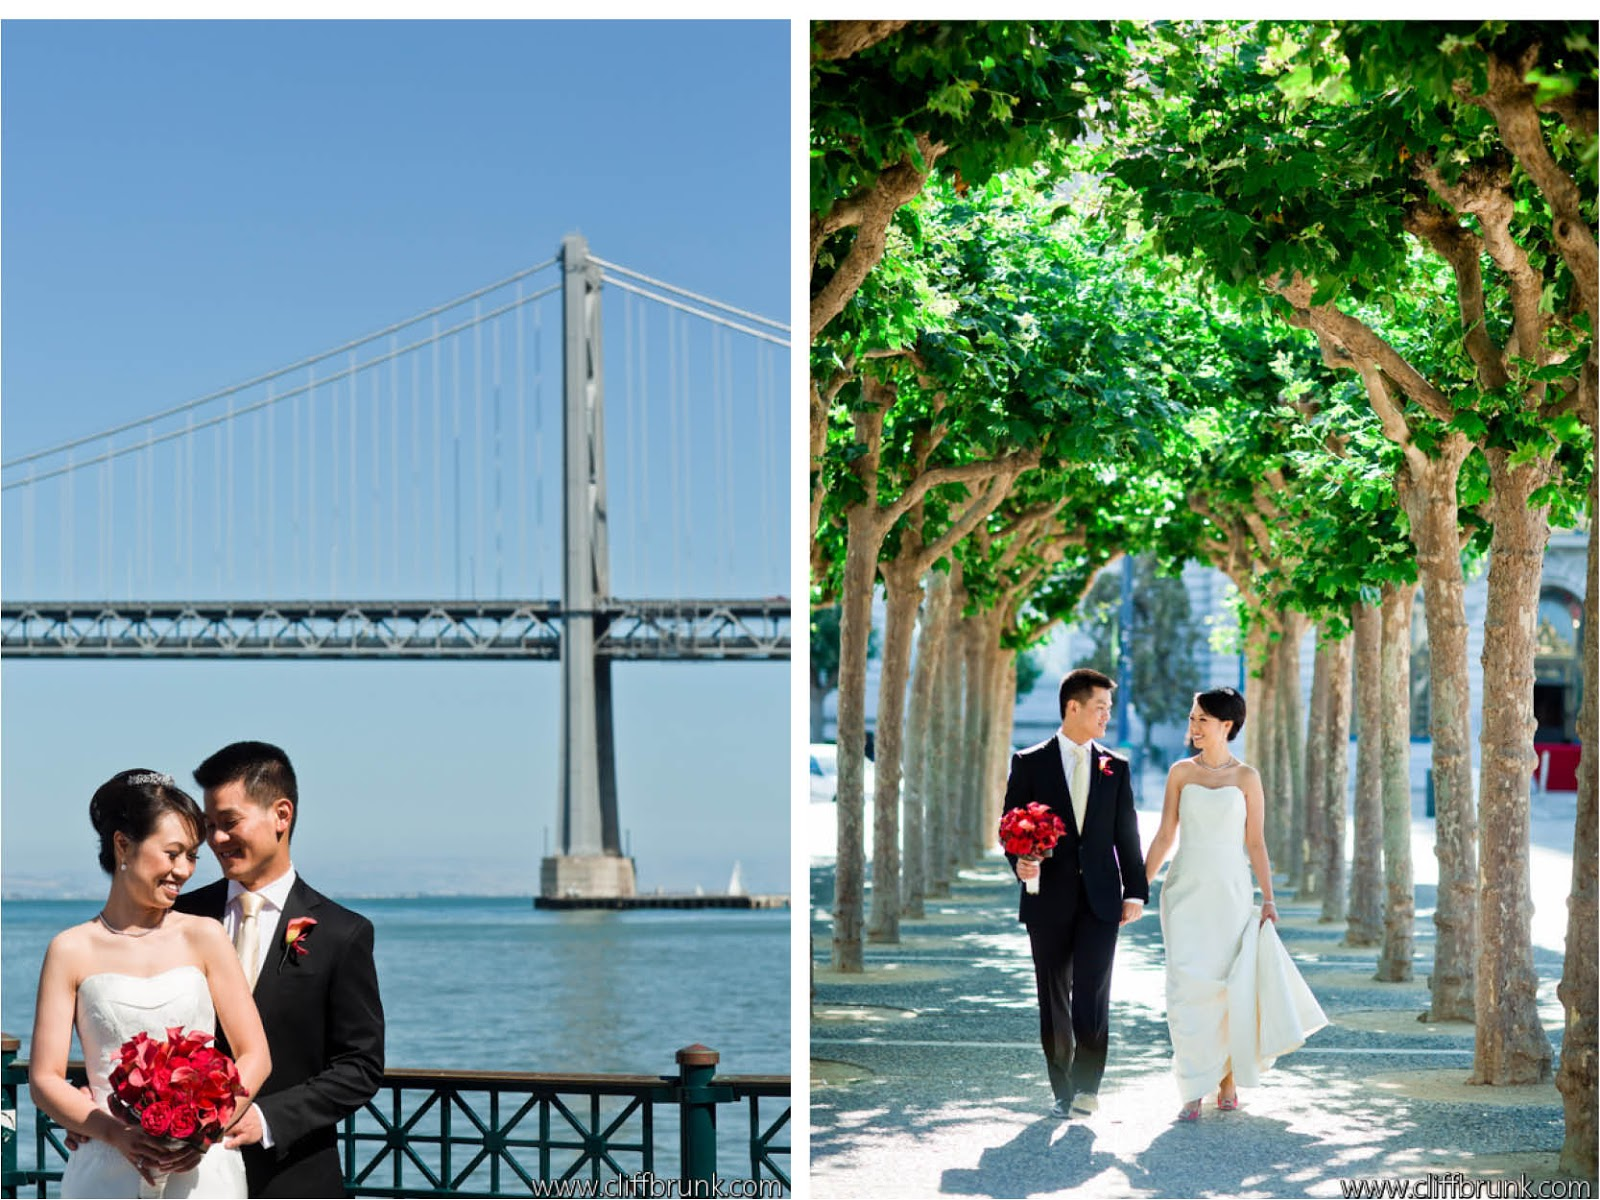 Practical Wedding Advice from Top San Francisco Wedding Planner ...